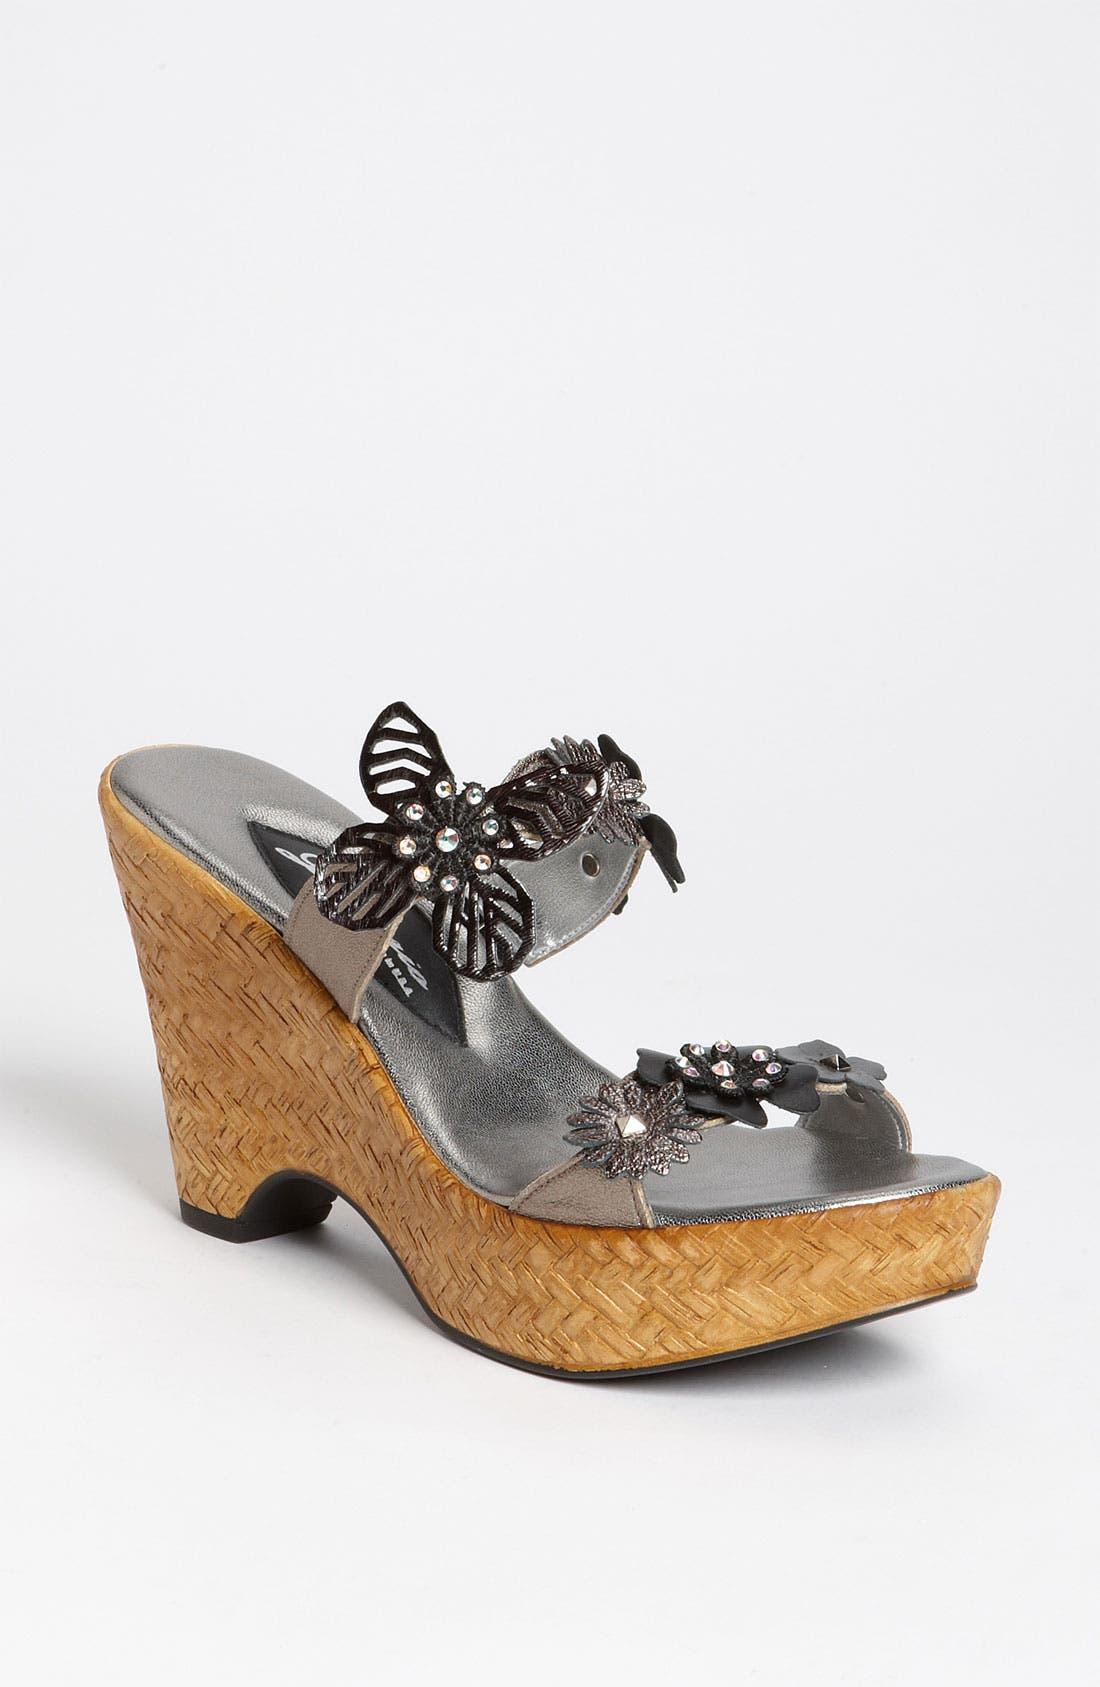 Alternate Image 1 Selected - Dezario 'Butterfly' Sandal